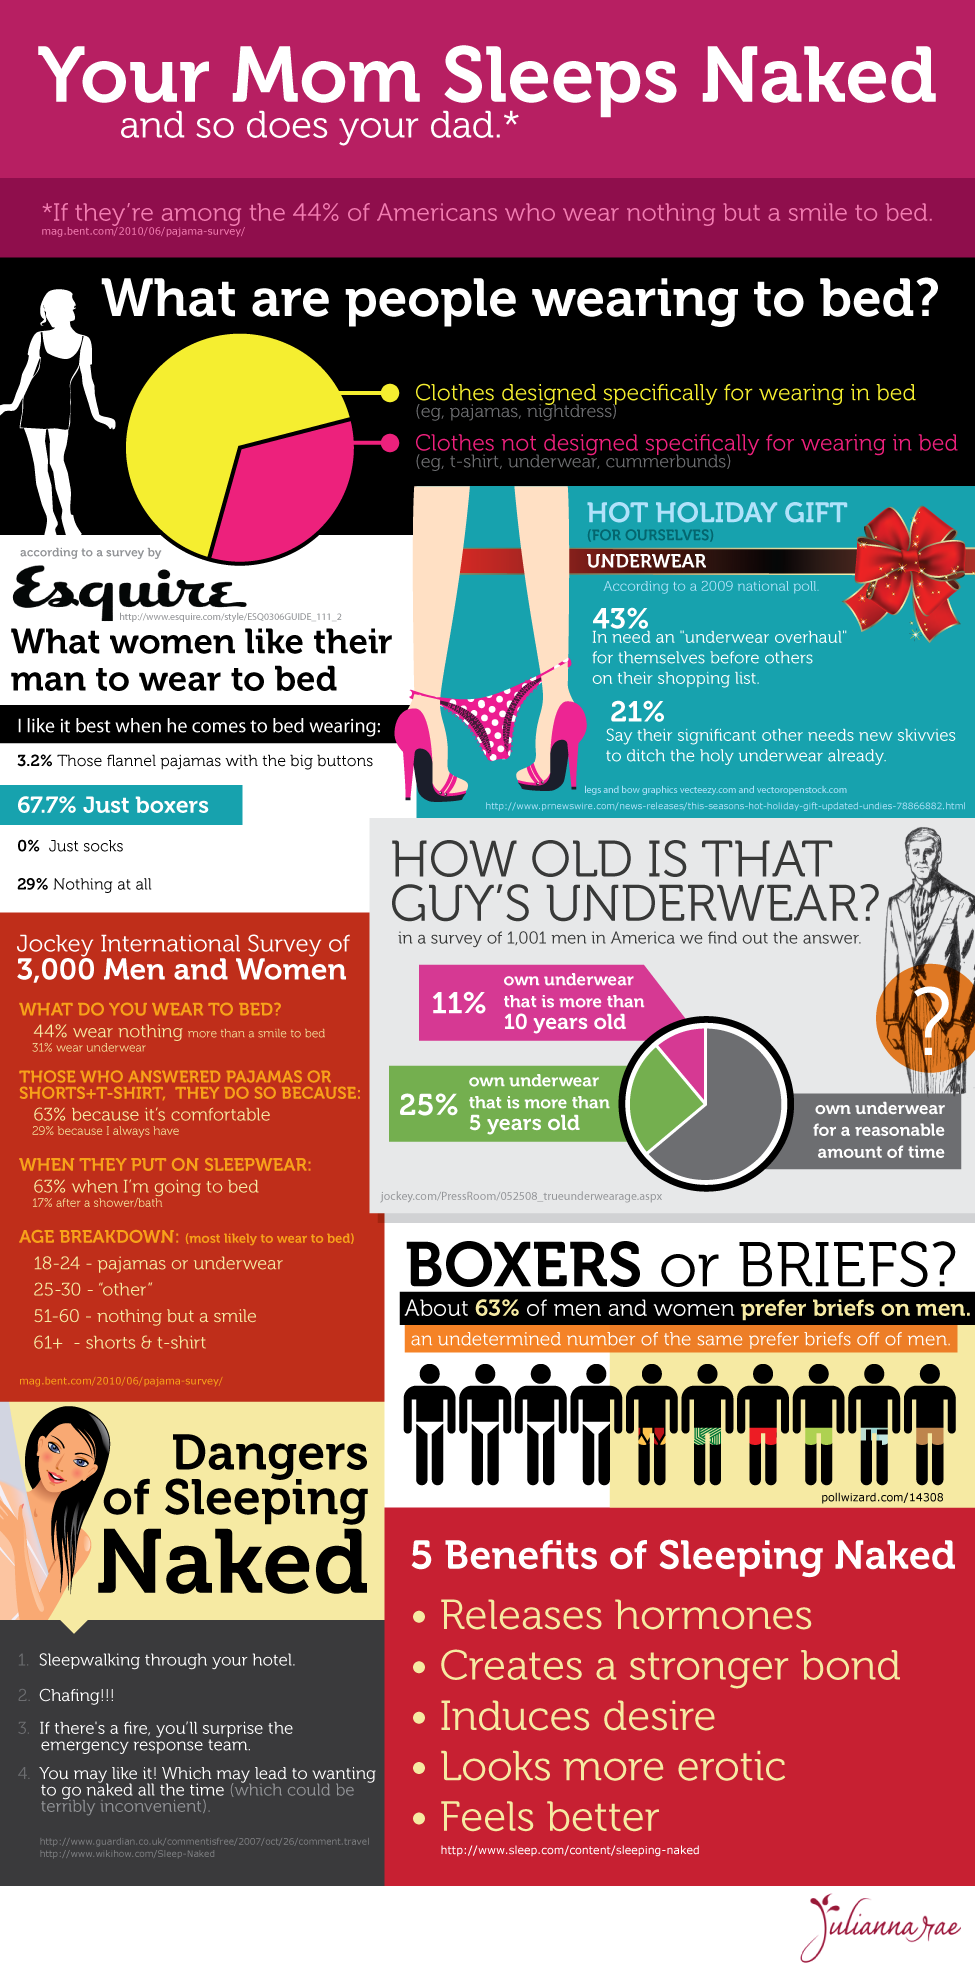 what people wear to bed What Do You Wear To Bed? (Infographic)